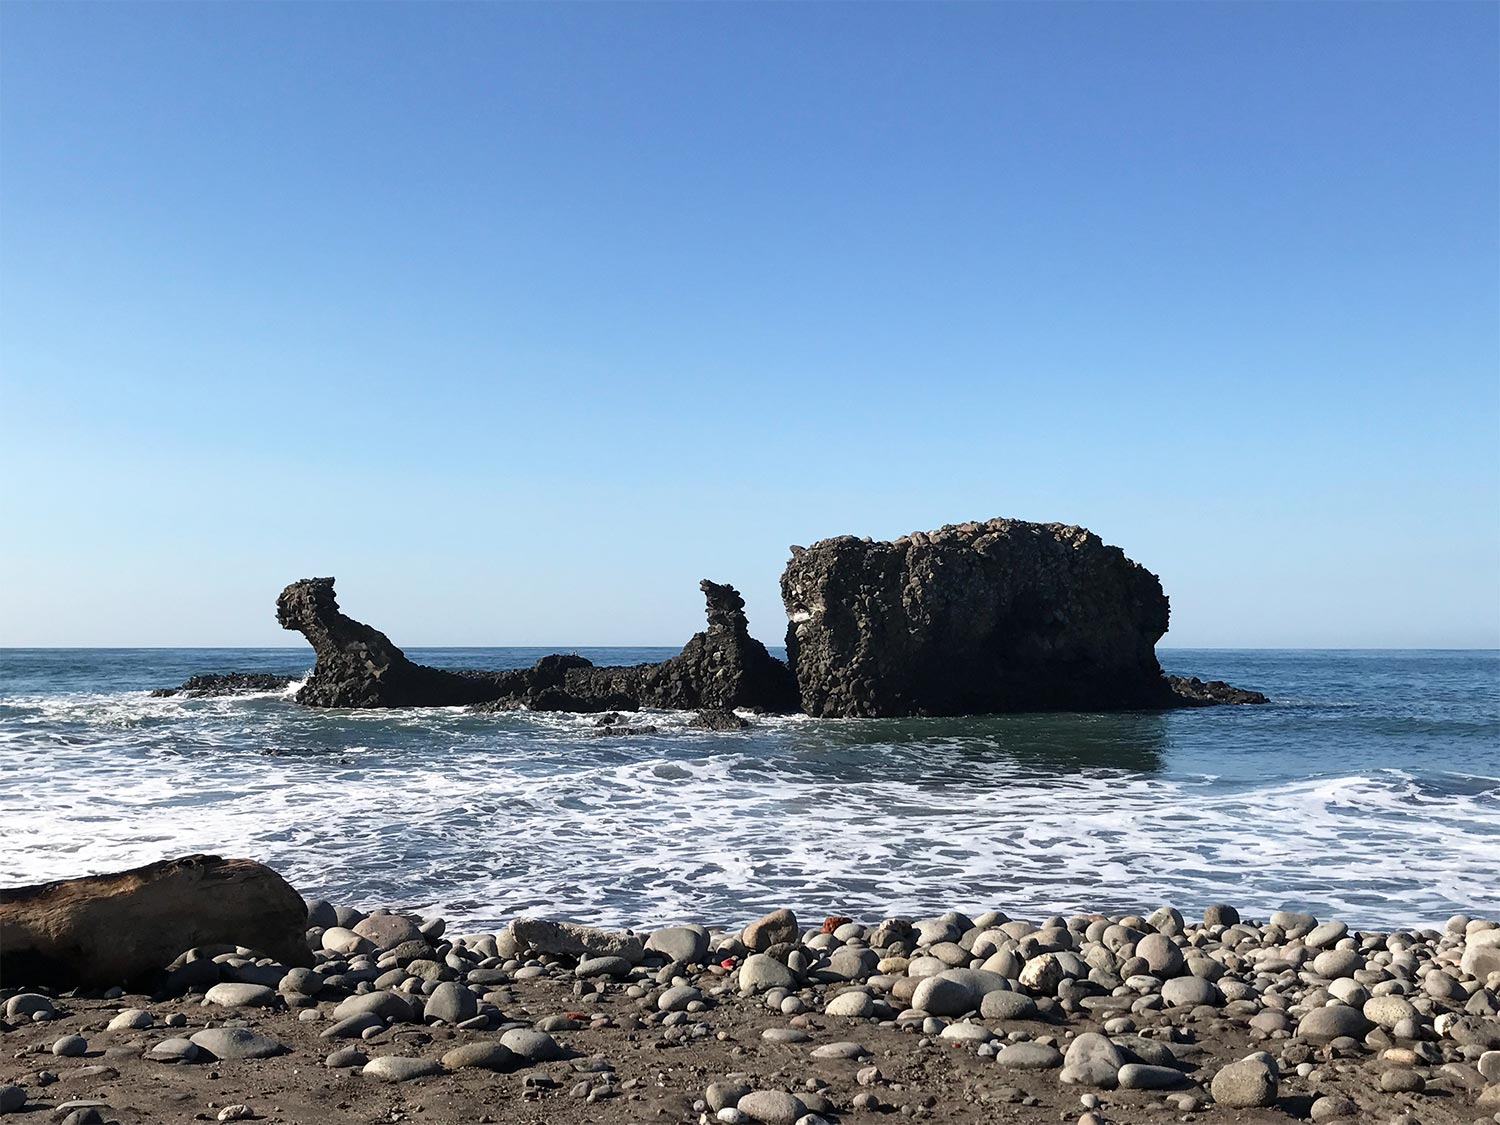 El TUnco is named after this rock, which years ago looked like a Pig